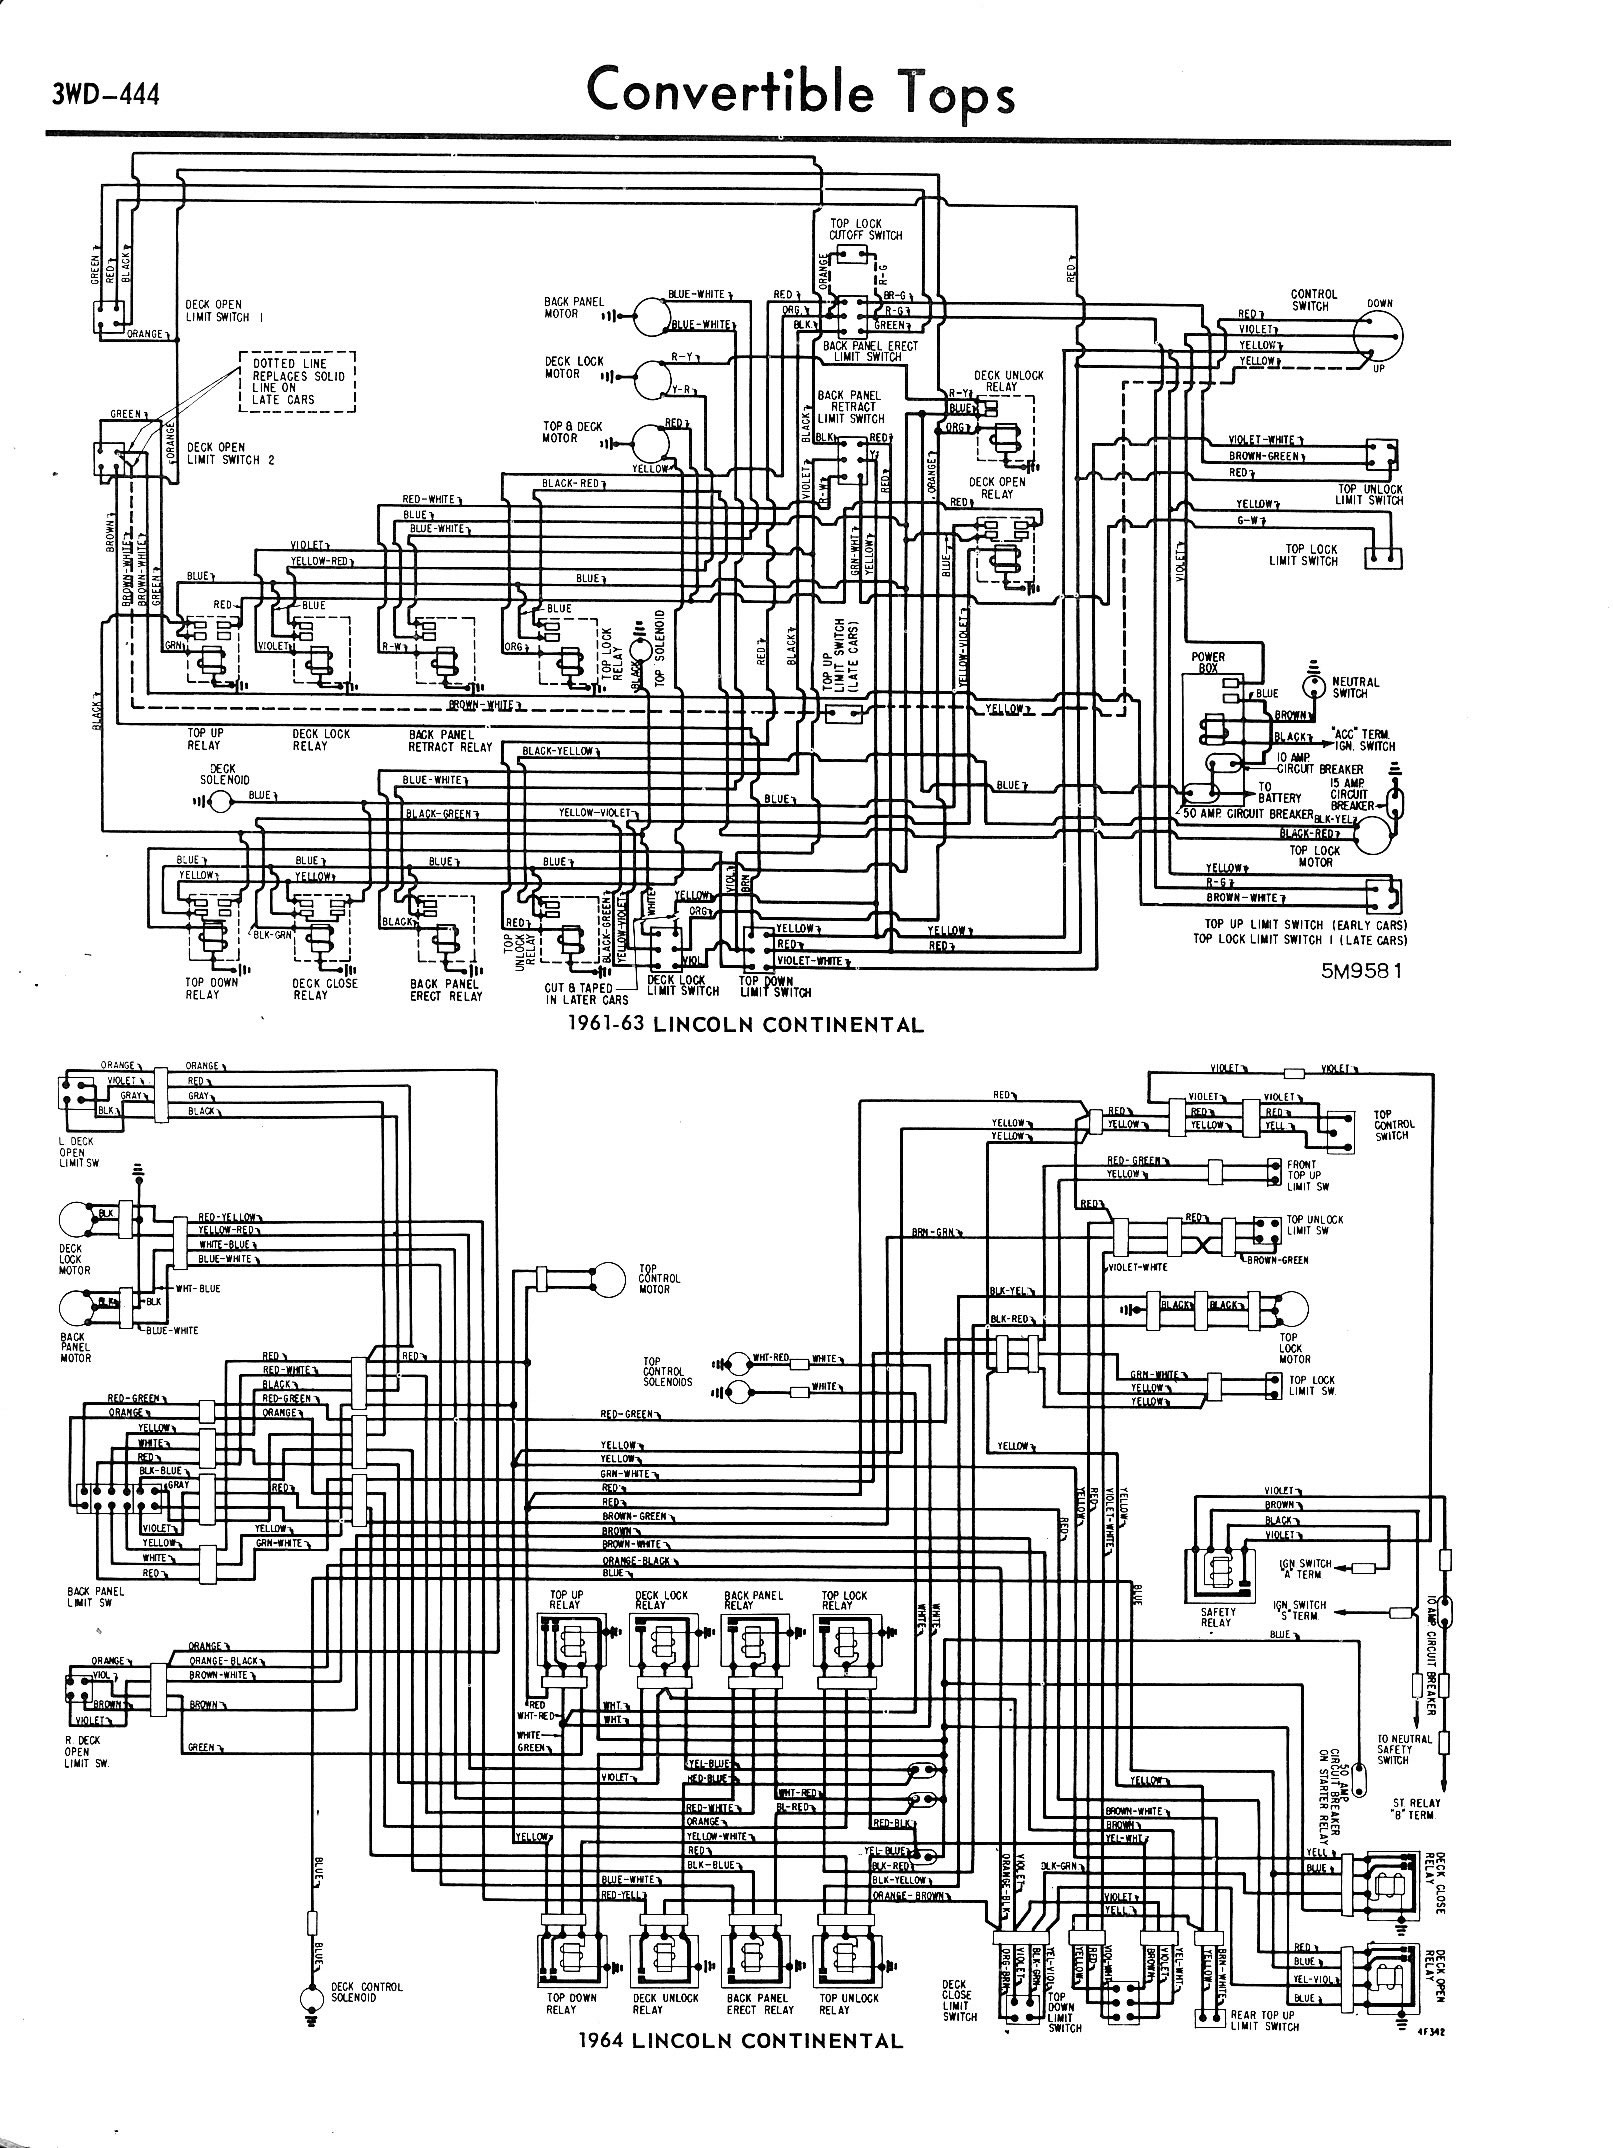 1963 Falcon Wiring Diagram | Wiring Diagram on amc amx wiring diagrams, chrysler lebaron wiring diagrams, volvo 240 wiring diagrams, dodge dakota wiring diagrams, jeep wrangler wiring diagrams, imperial wiring diagrams, ford ranchero seats, peterbilt wiring diagrams, ford ranchero engine, oldsmobile alero wiring diagrams, mercury sable wiring diagrams, ford ranchero parts, jeep cj wiring diagrams, dodge ramcharger wiring diagrams, jeep patriot wiring diagrams, pontiac grand prix wiring diagrams, oldsmobile 98 wiring diagrams, plymouth barracuda wiring diagrams, chrysler concorde wiring diagrams, saab 9-3 wiring diagrams,